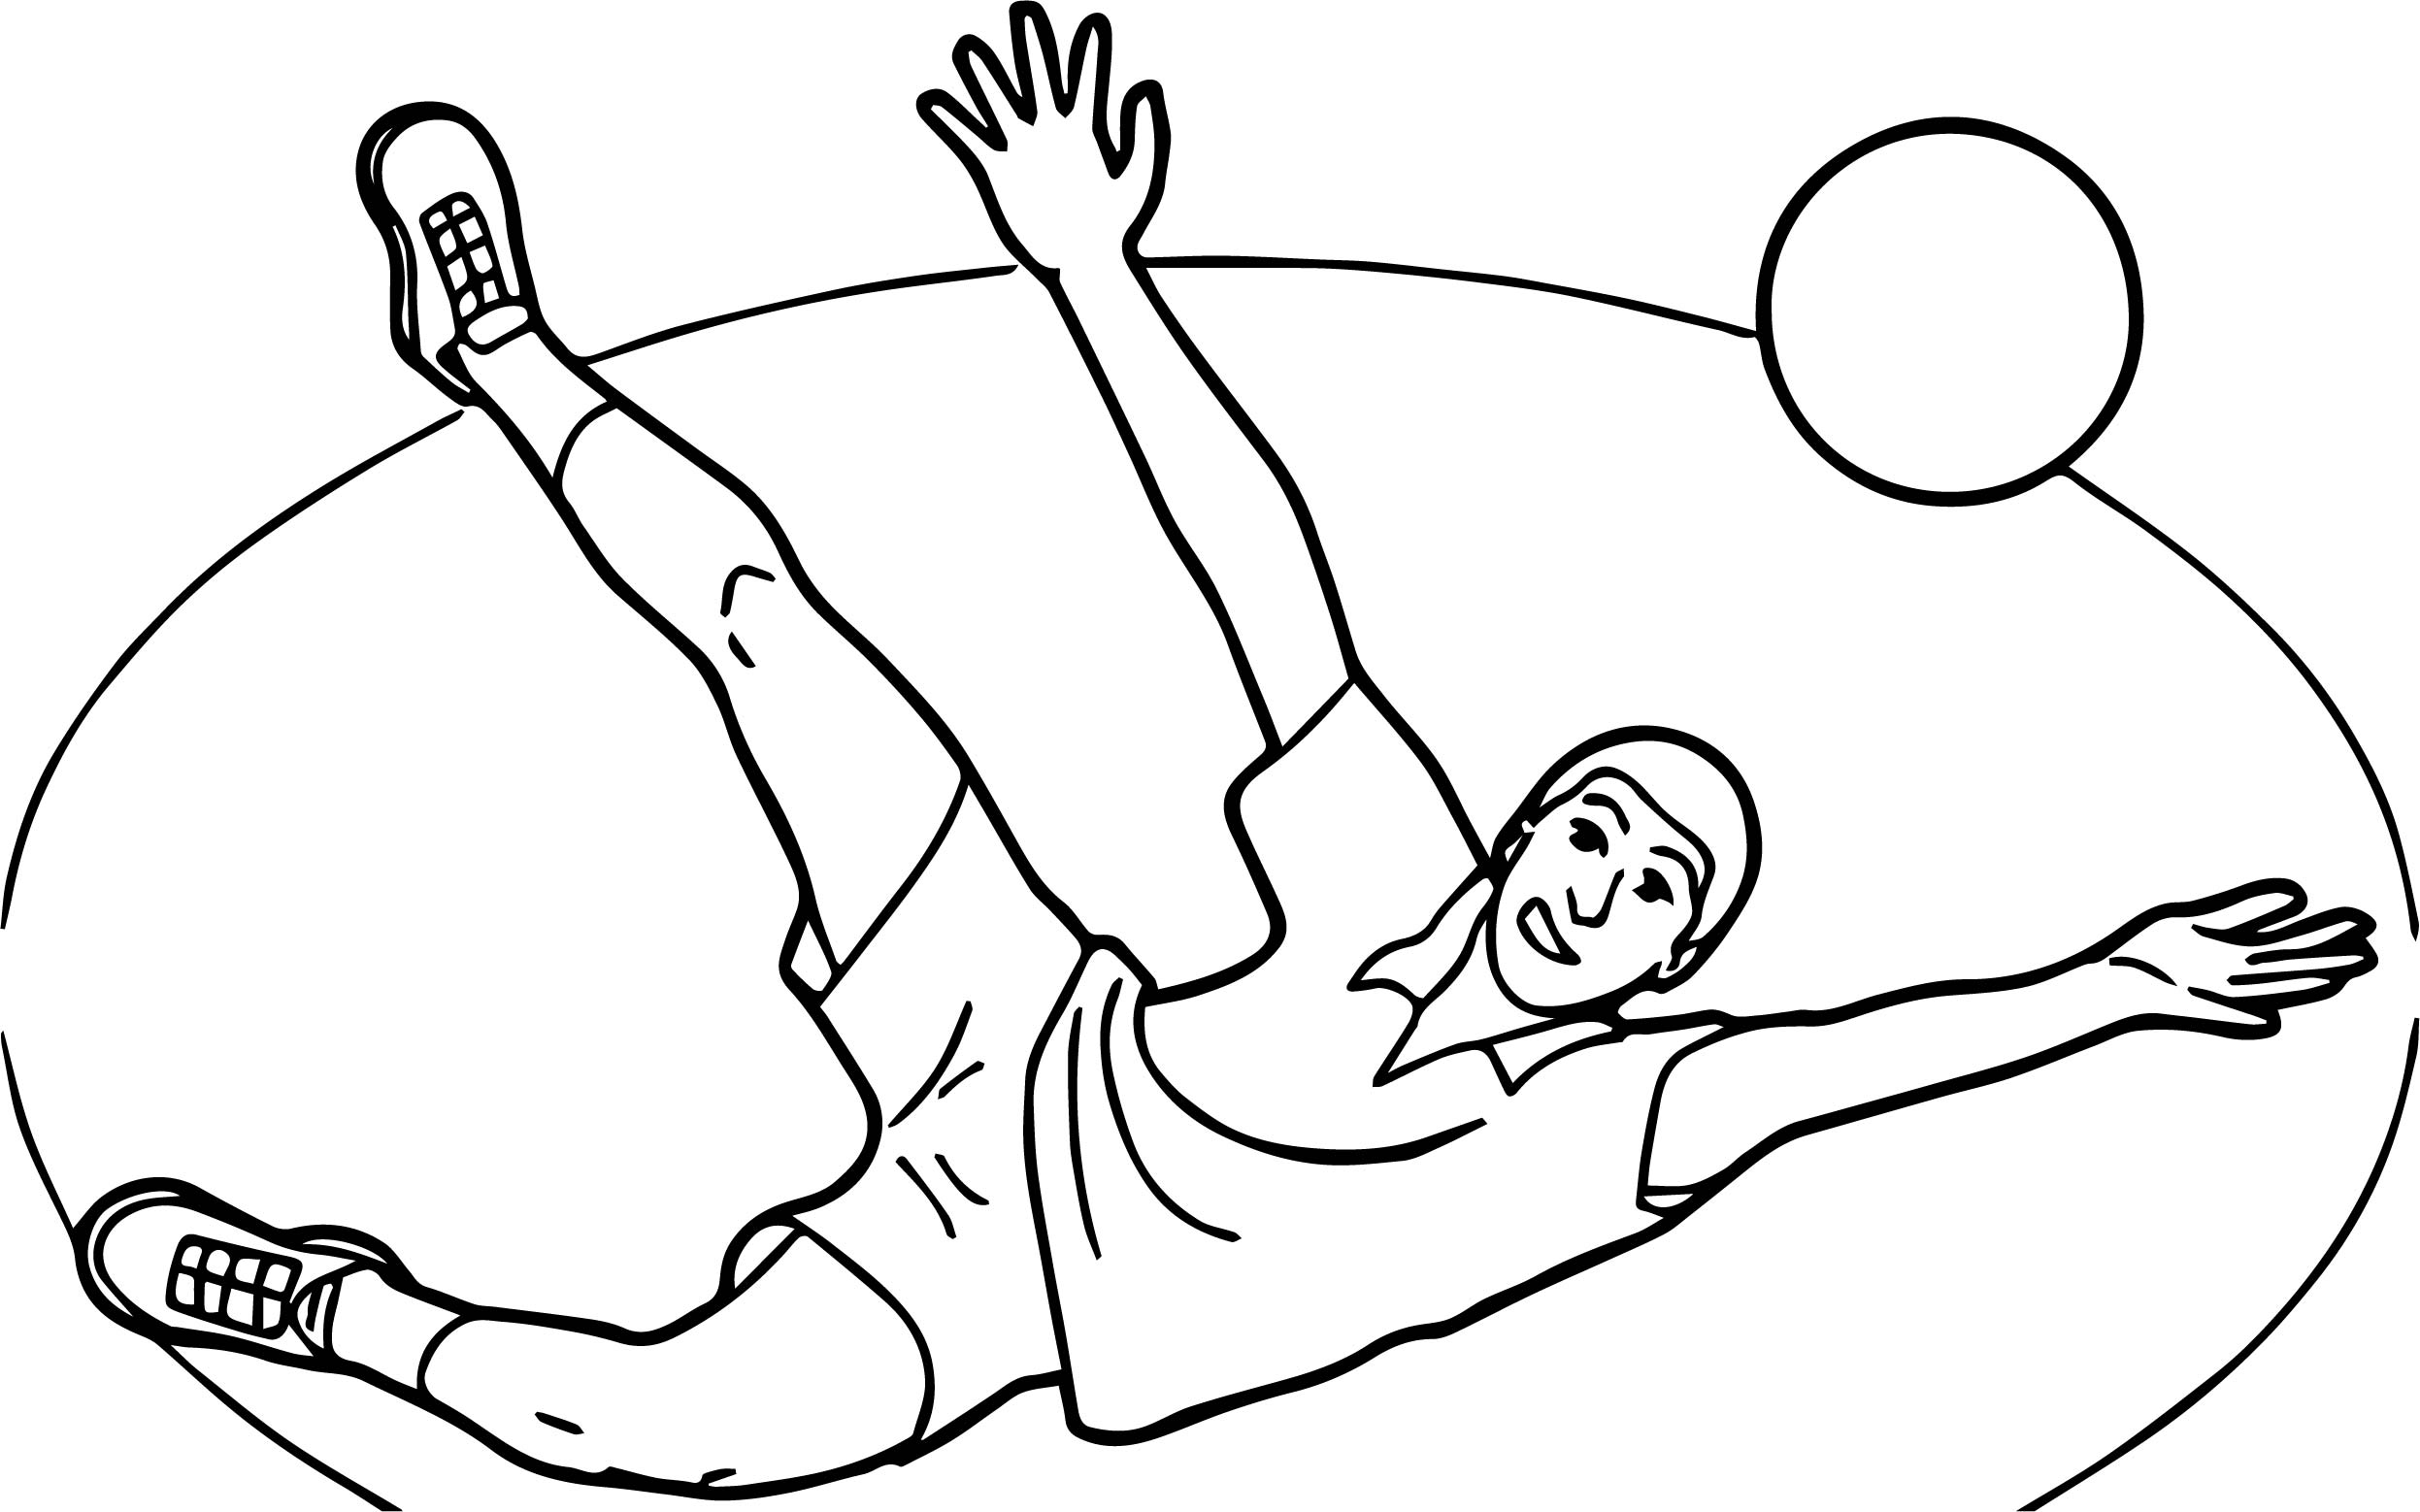 Playing Volleyball Coloring Page